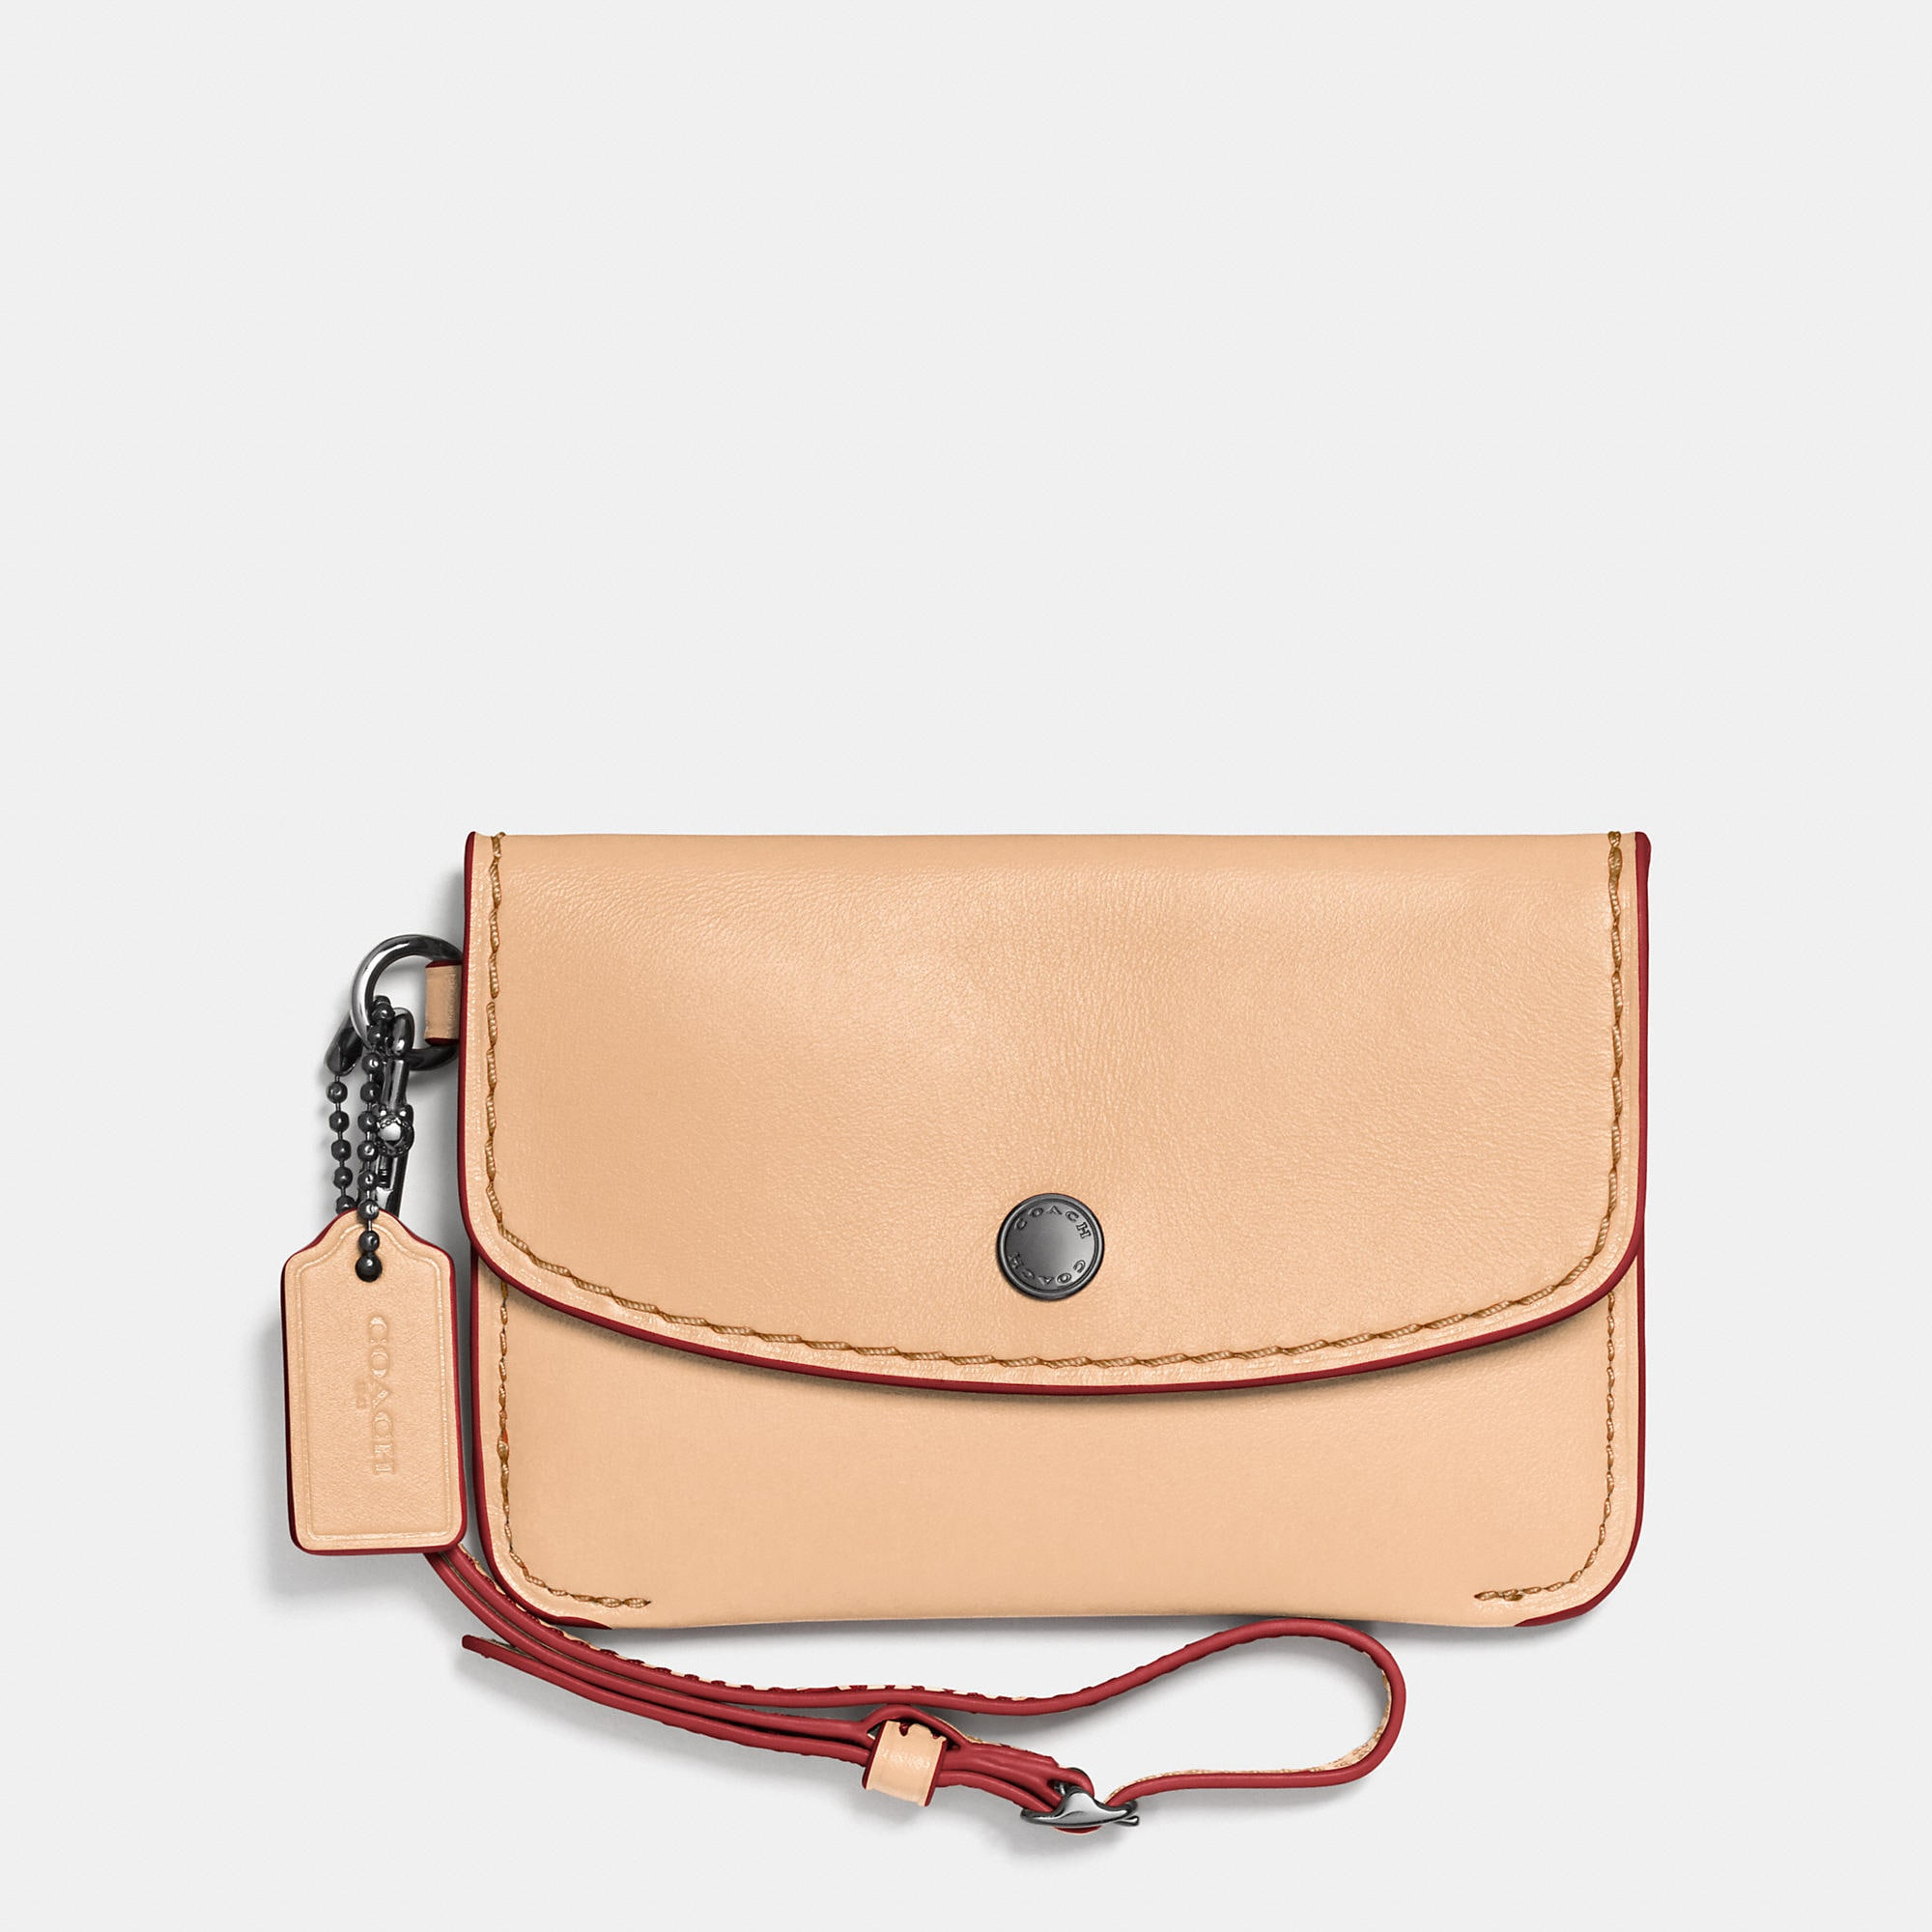 Coach 1941 Envelope Key Pouch In Glovetanned Leather